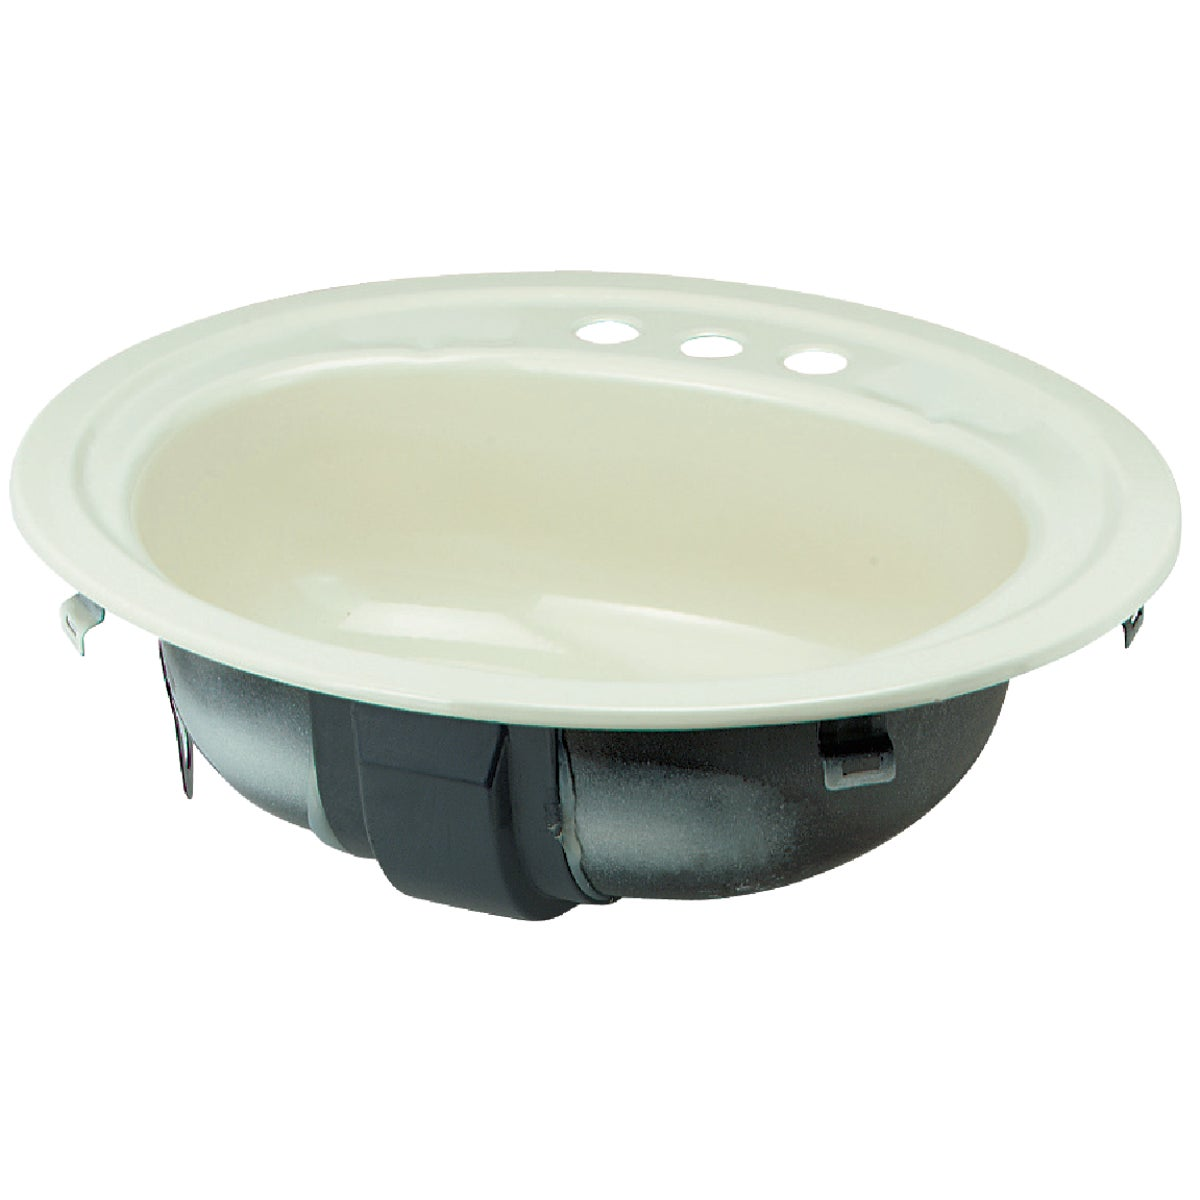 BONE OVAL LAVATORY - 3004-733 by Briggs